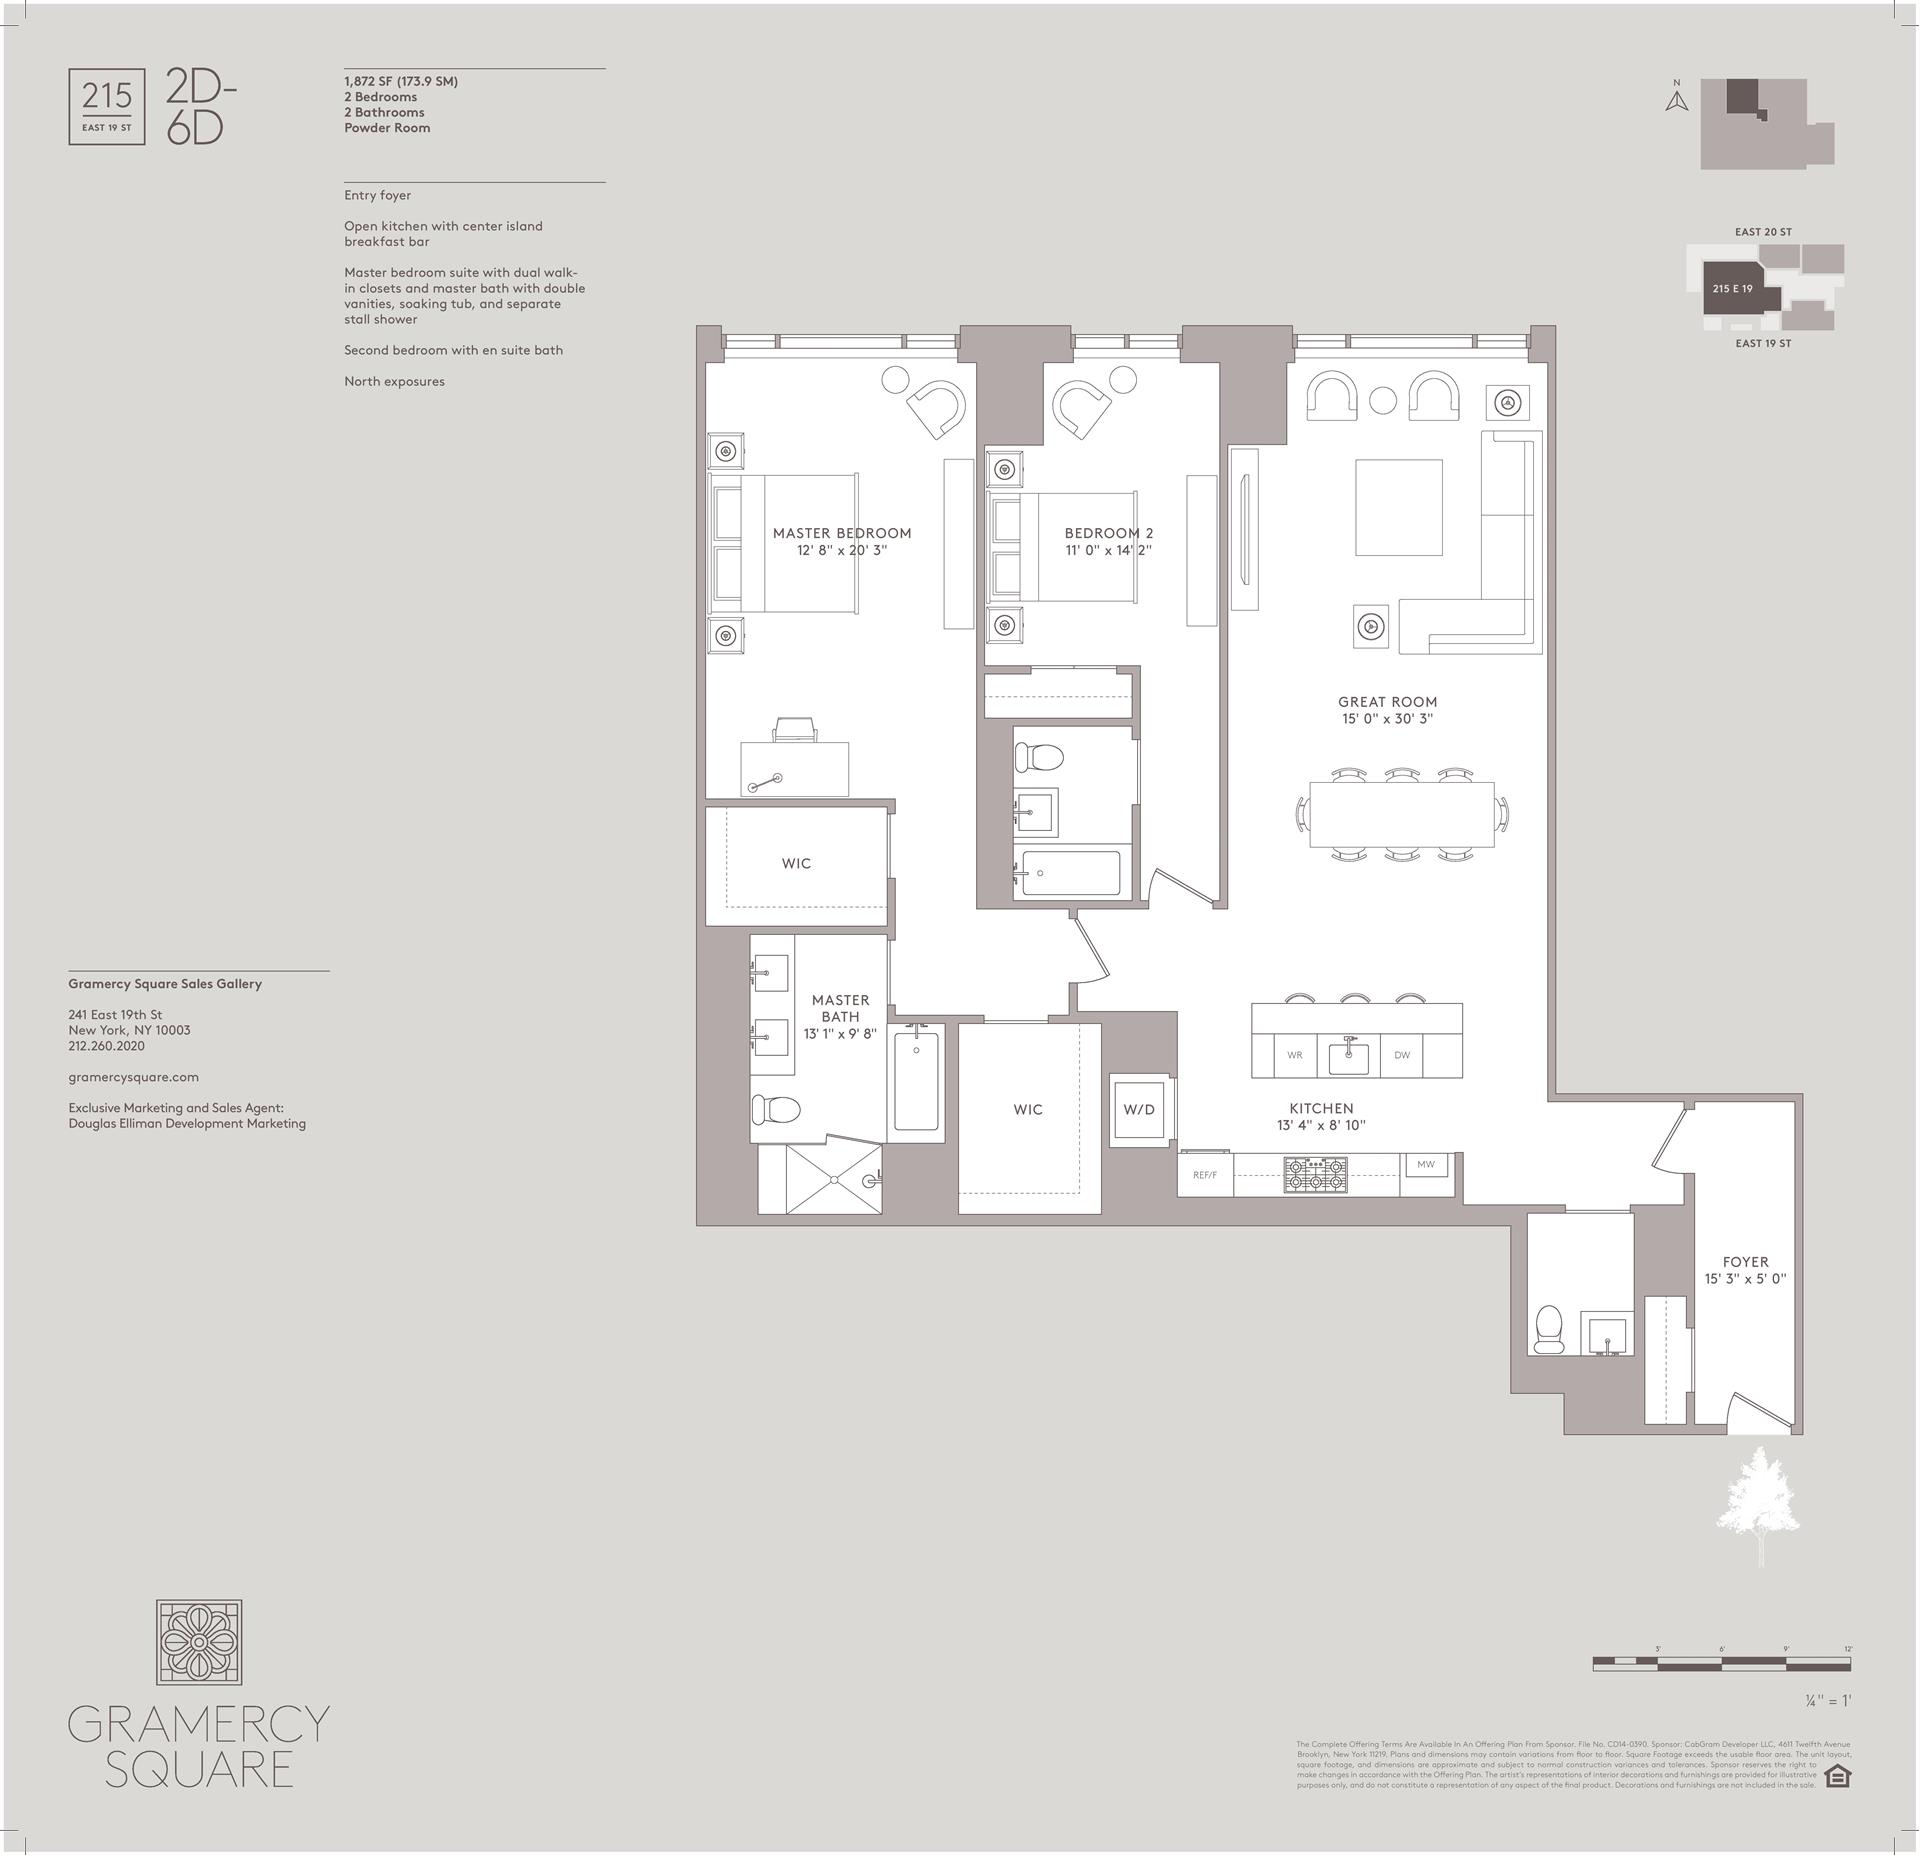 Floor plan of Gramercy Square, 215 East 19th St, 6D - Gramercy - Union Square, New York